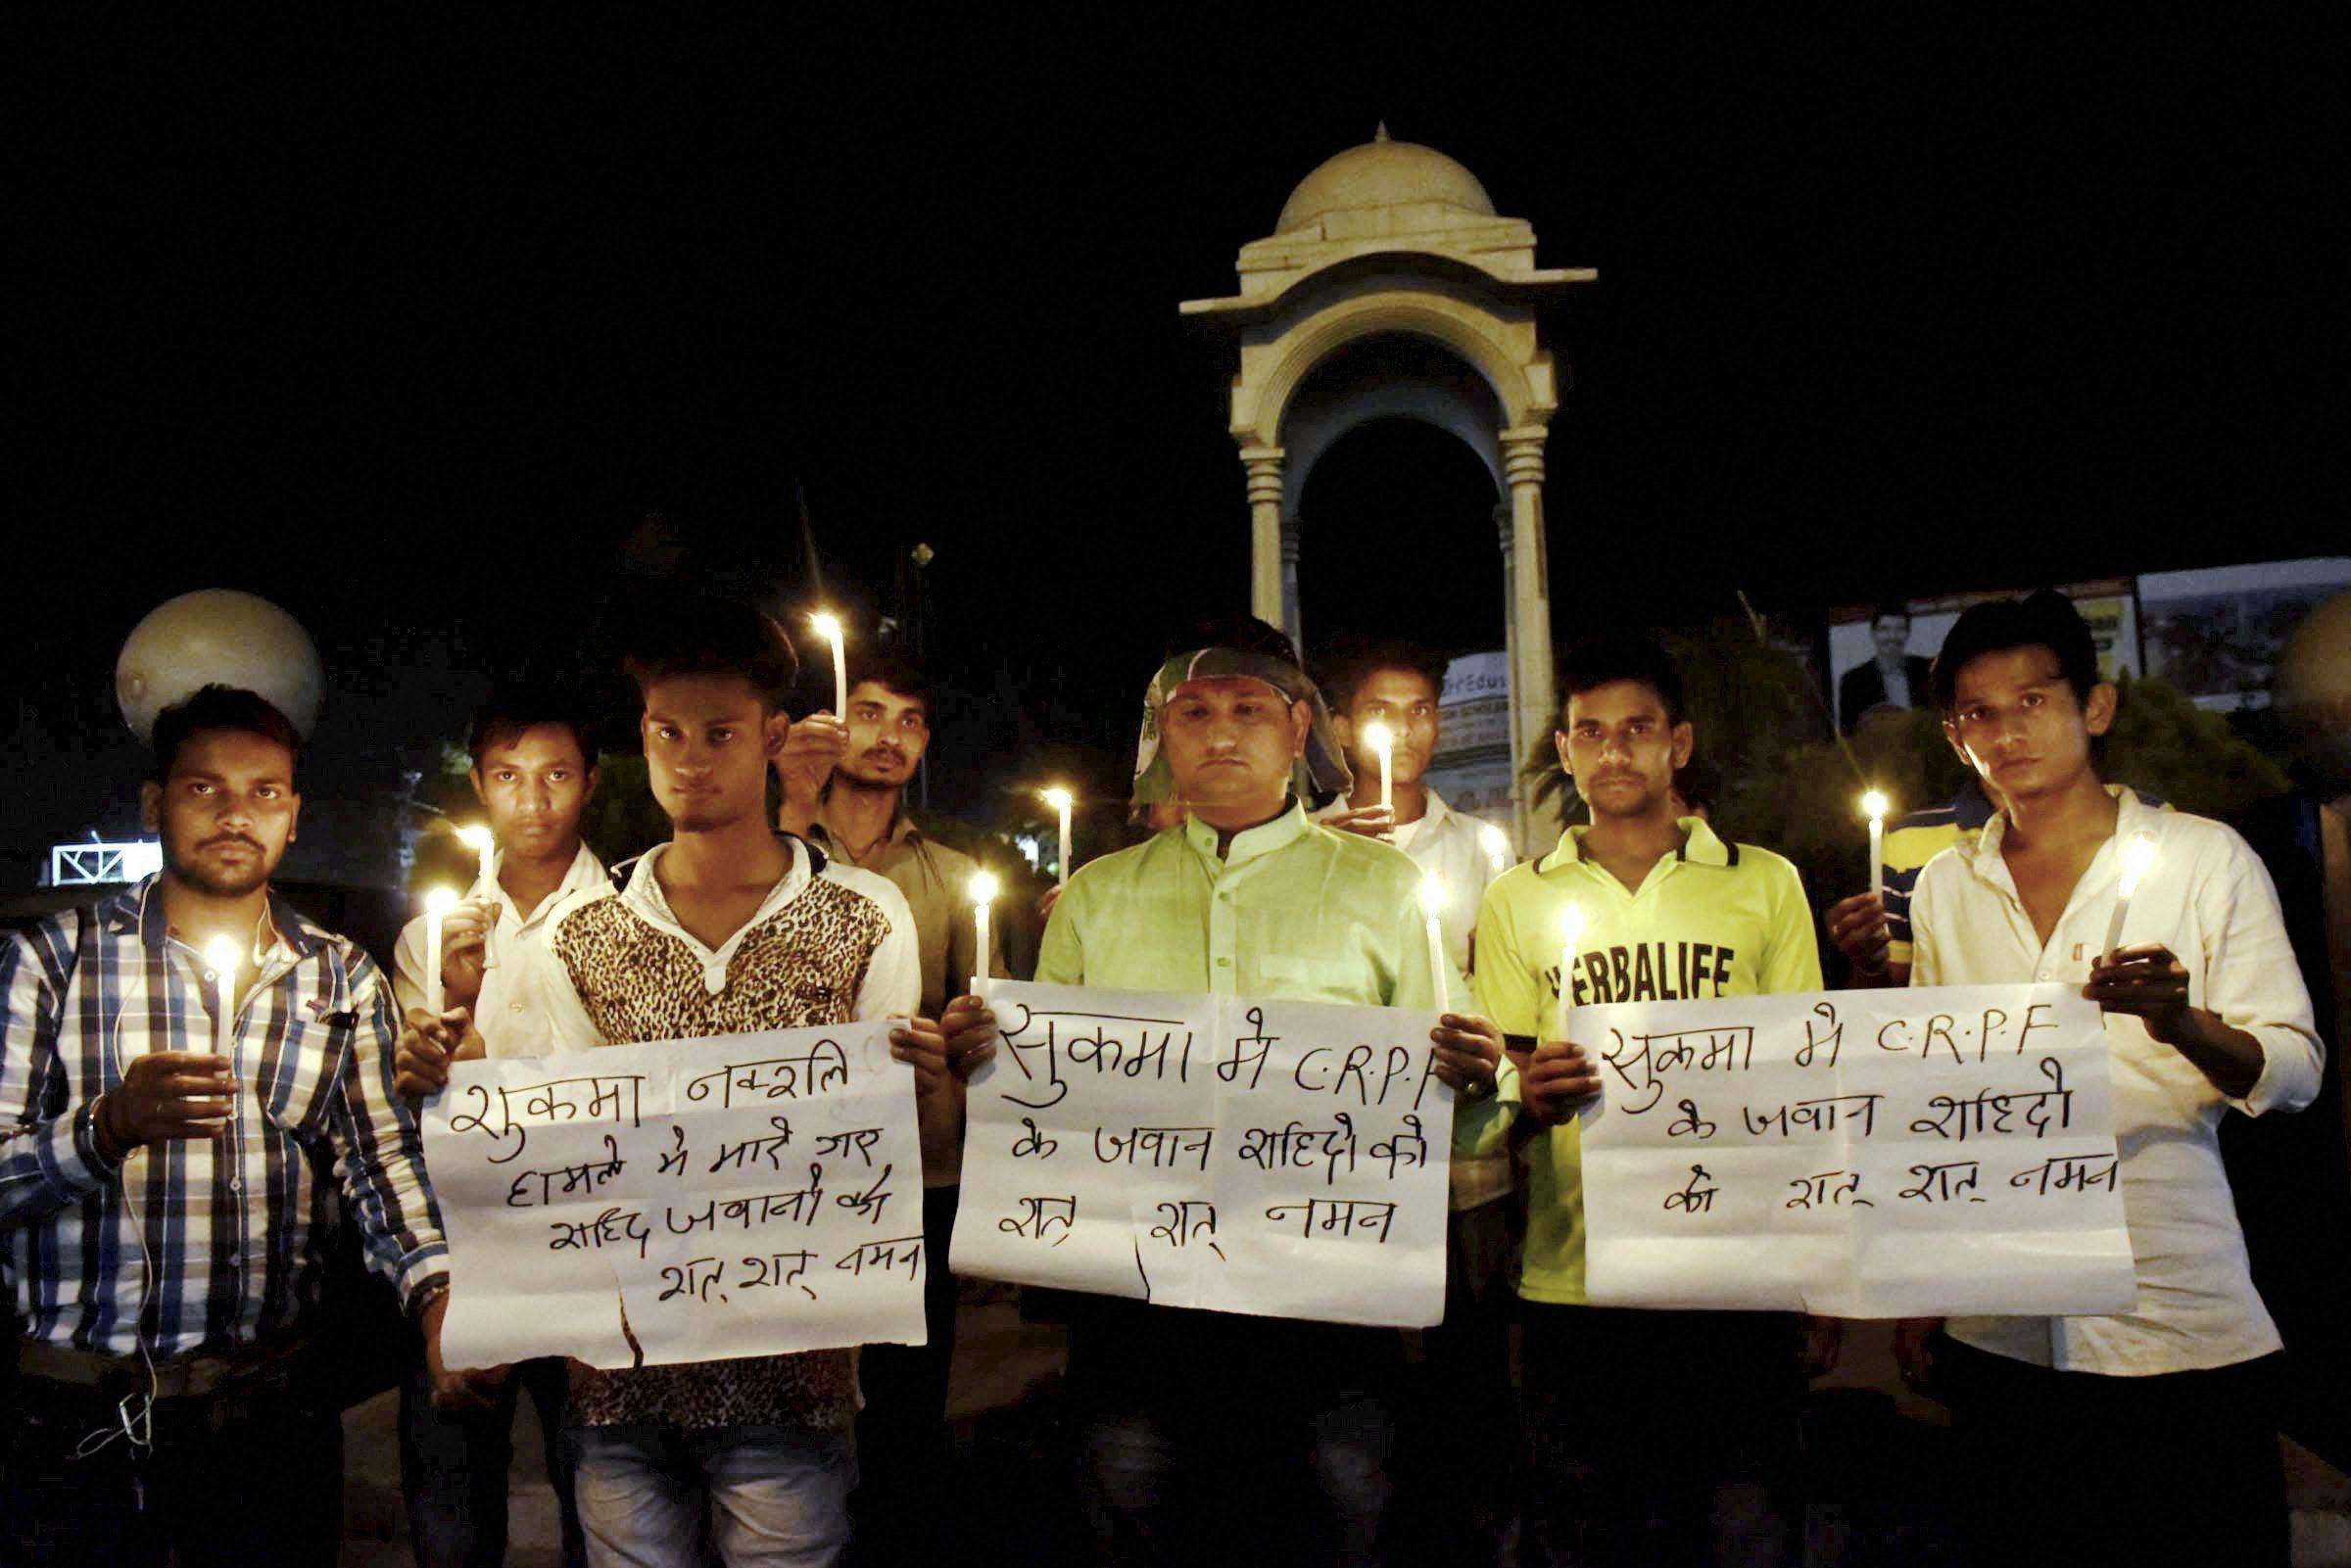 Patna: LJP activists take part in a candle light vigil to pray for CRPF jawans lost their lives in a Naxal attack in Chhattisgarh's Sukma district, in Patna on Monday. PTI Photo (PTI4_24_2017_000175B)